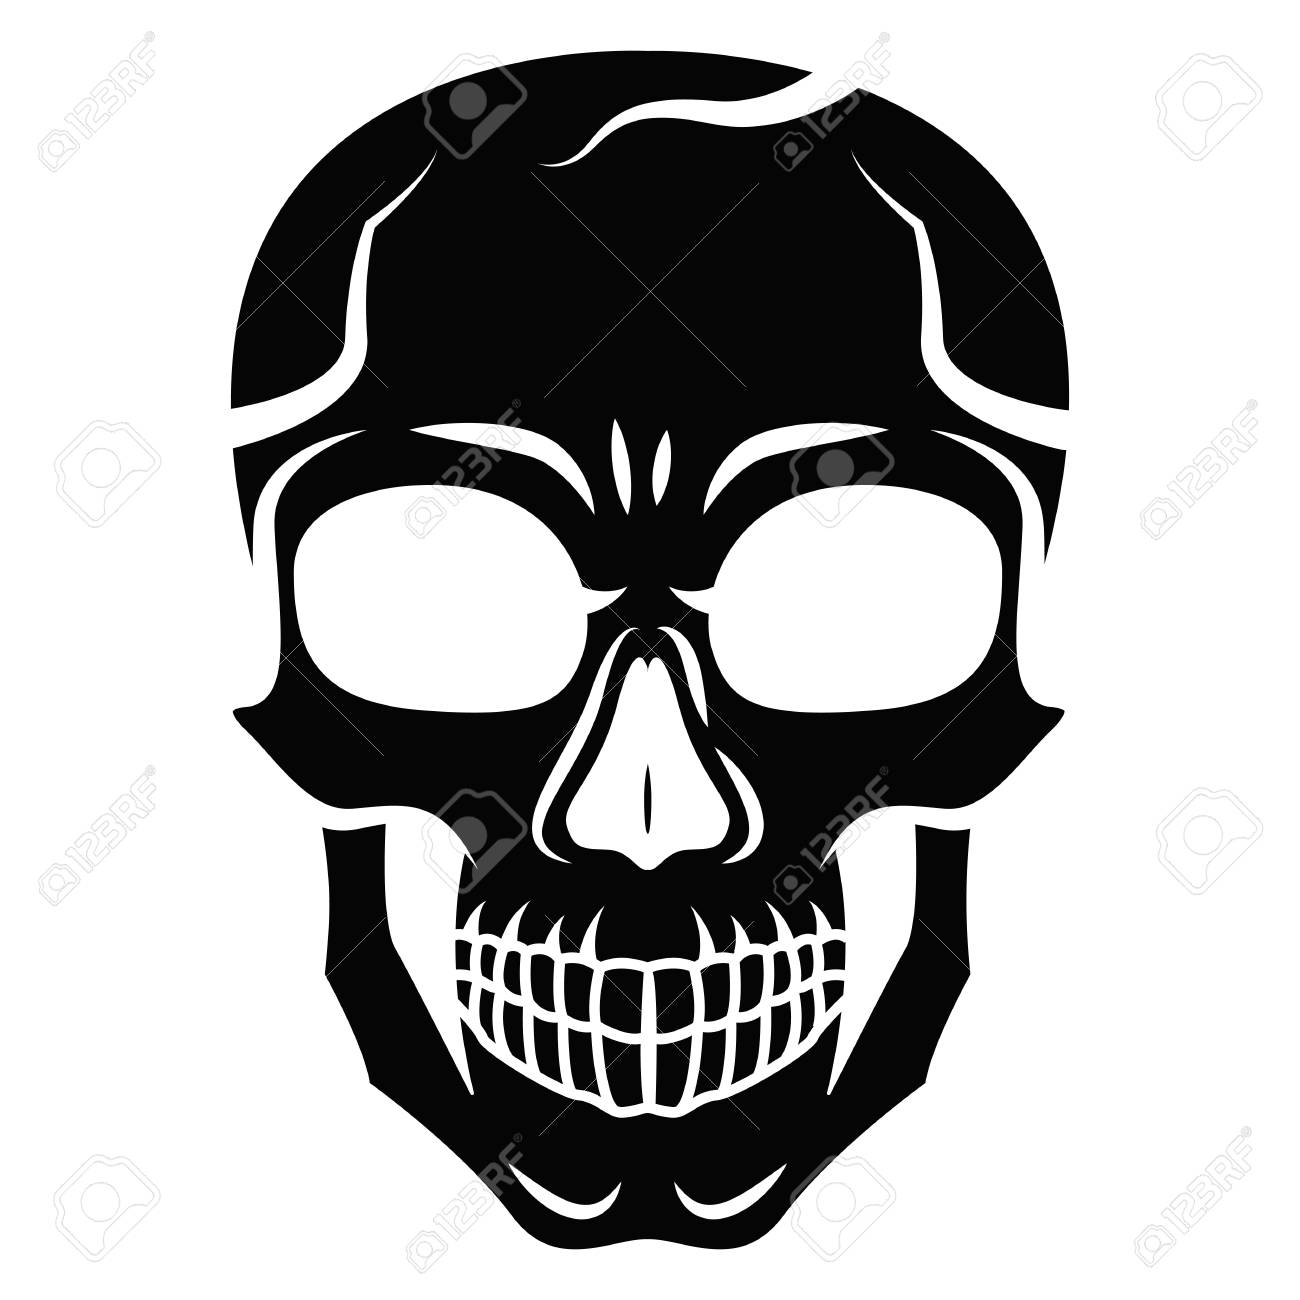 Skull Black Background White Outline Wiring Diagrams